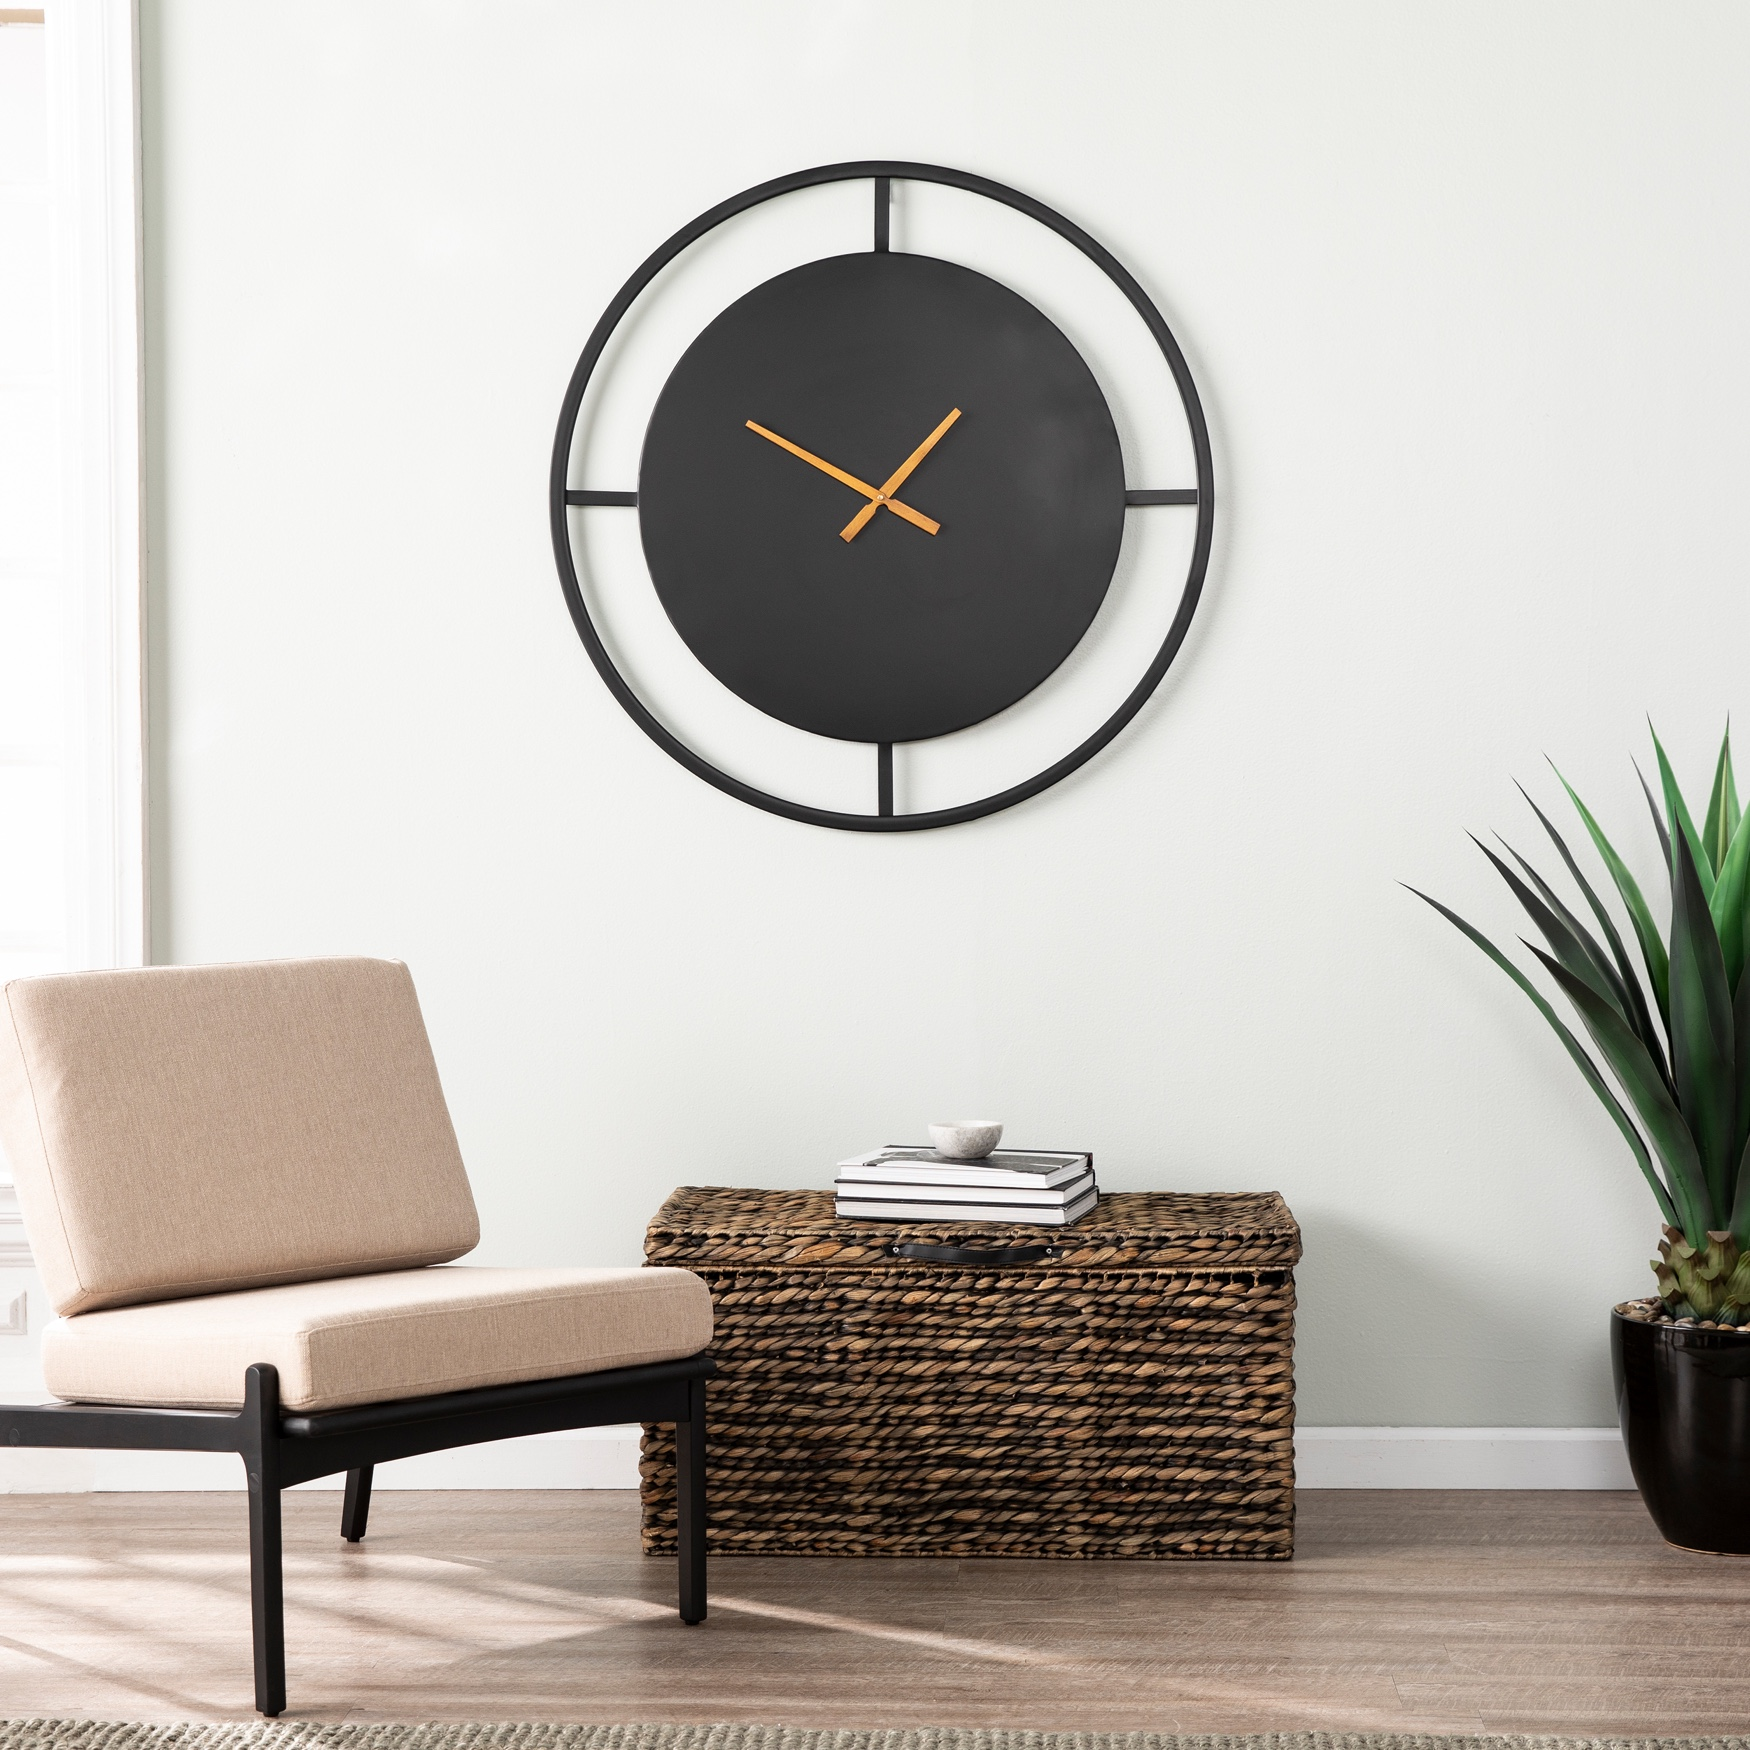 Ekstine Decorative Wall Clock, BLACK